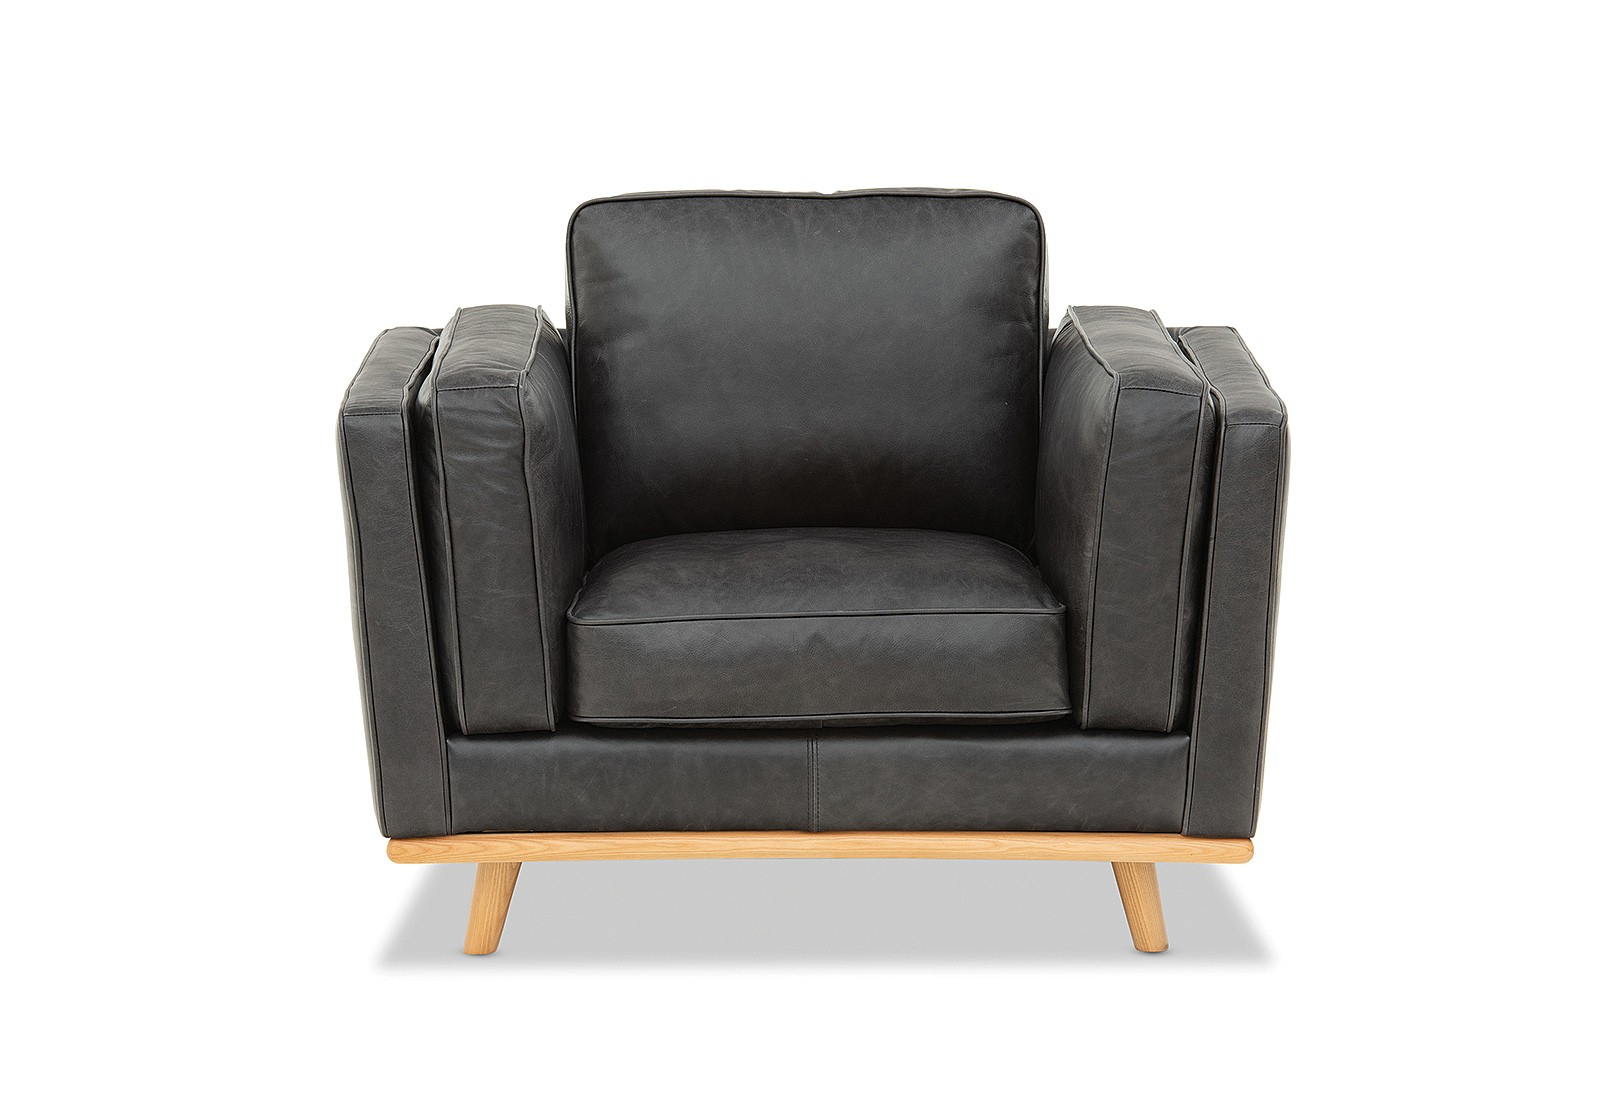 Accent Chairs | Amart Furniture With Regard To Aidan Ii Swivel Accent Chairs (View 24 of 25)